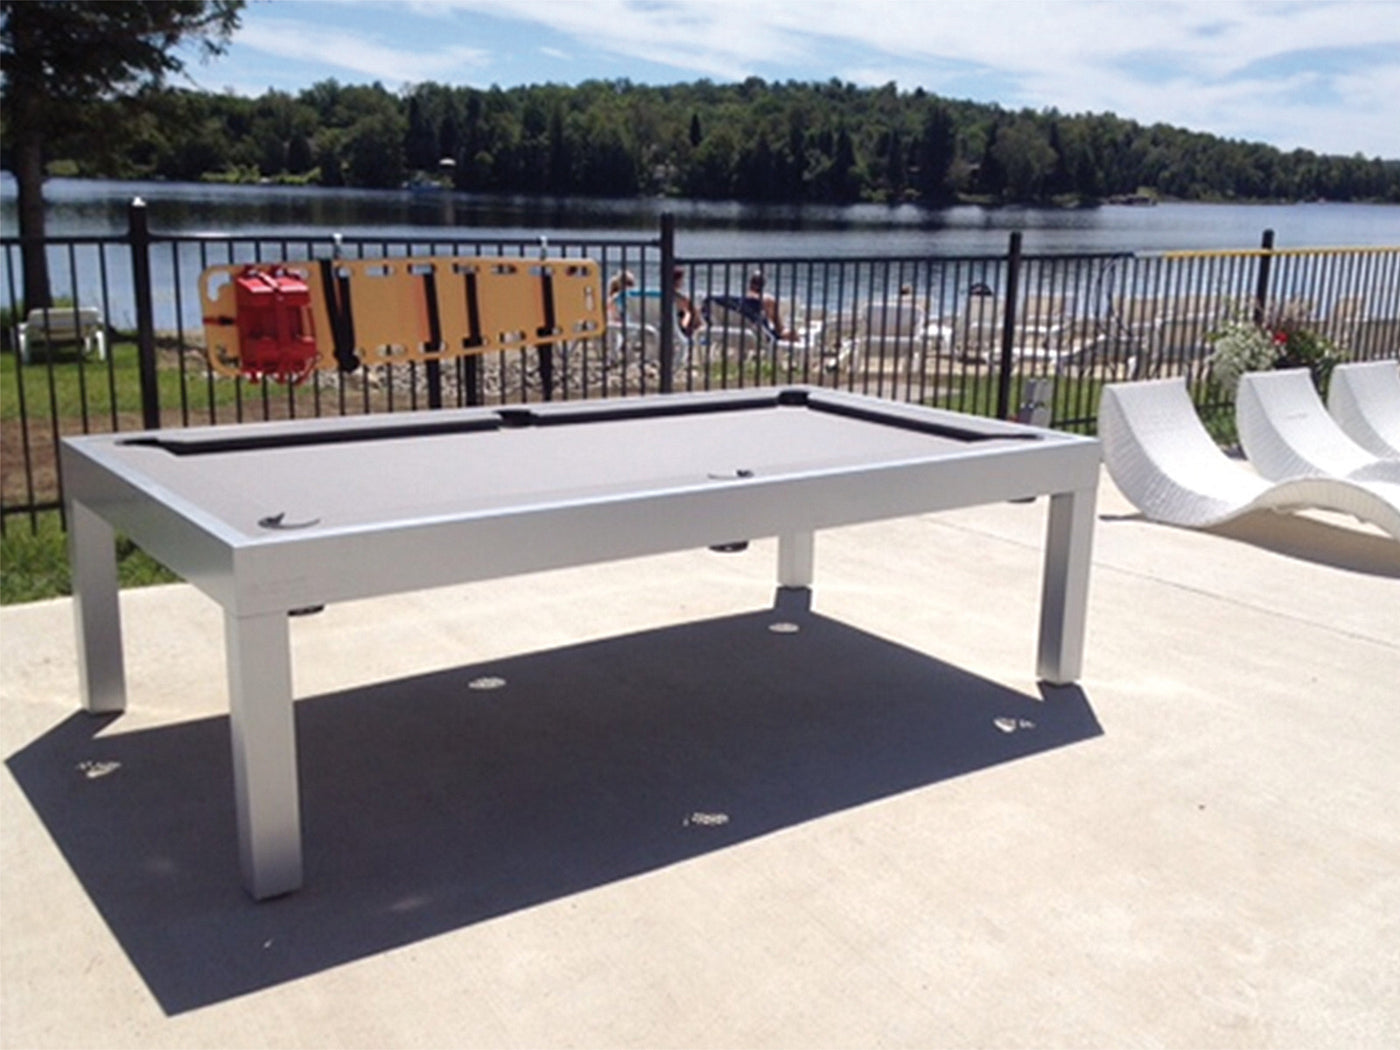 Canada Billiard Storm Outdoor Pool Table White ...